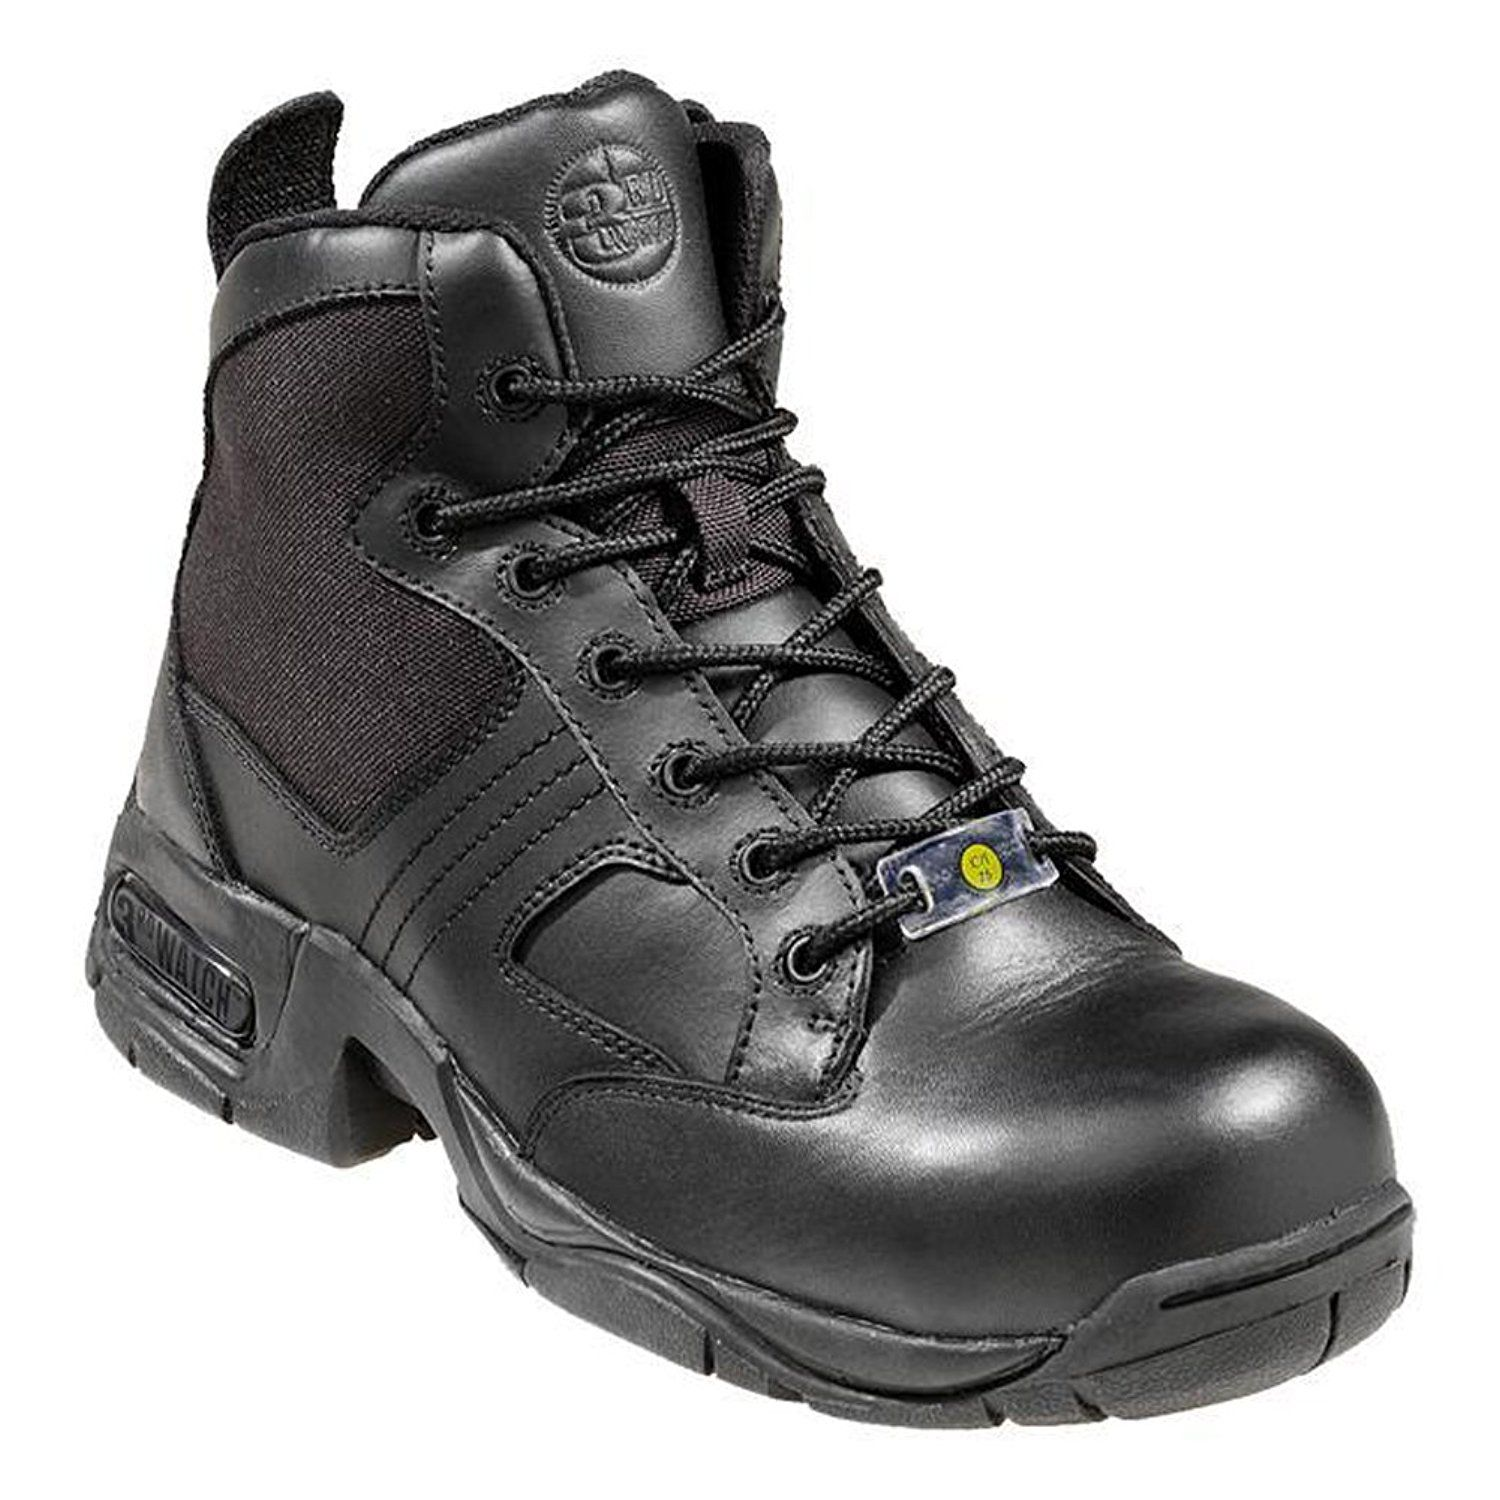 Nautilus Boots Women's Composite Toe Black Work Boots